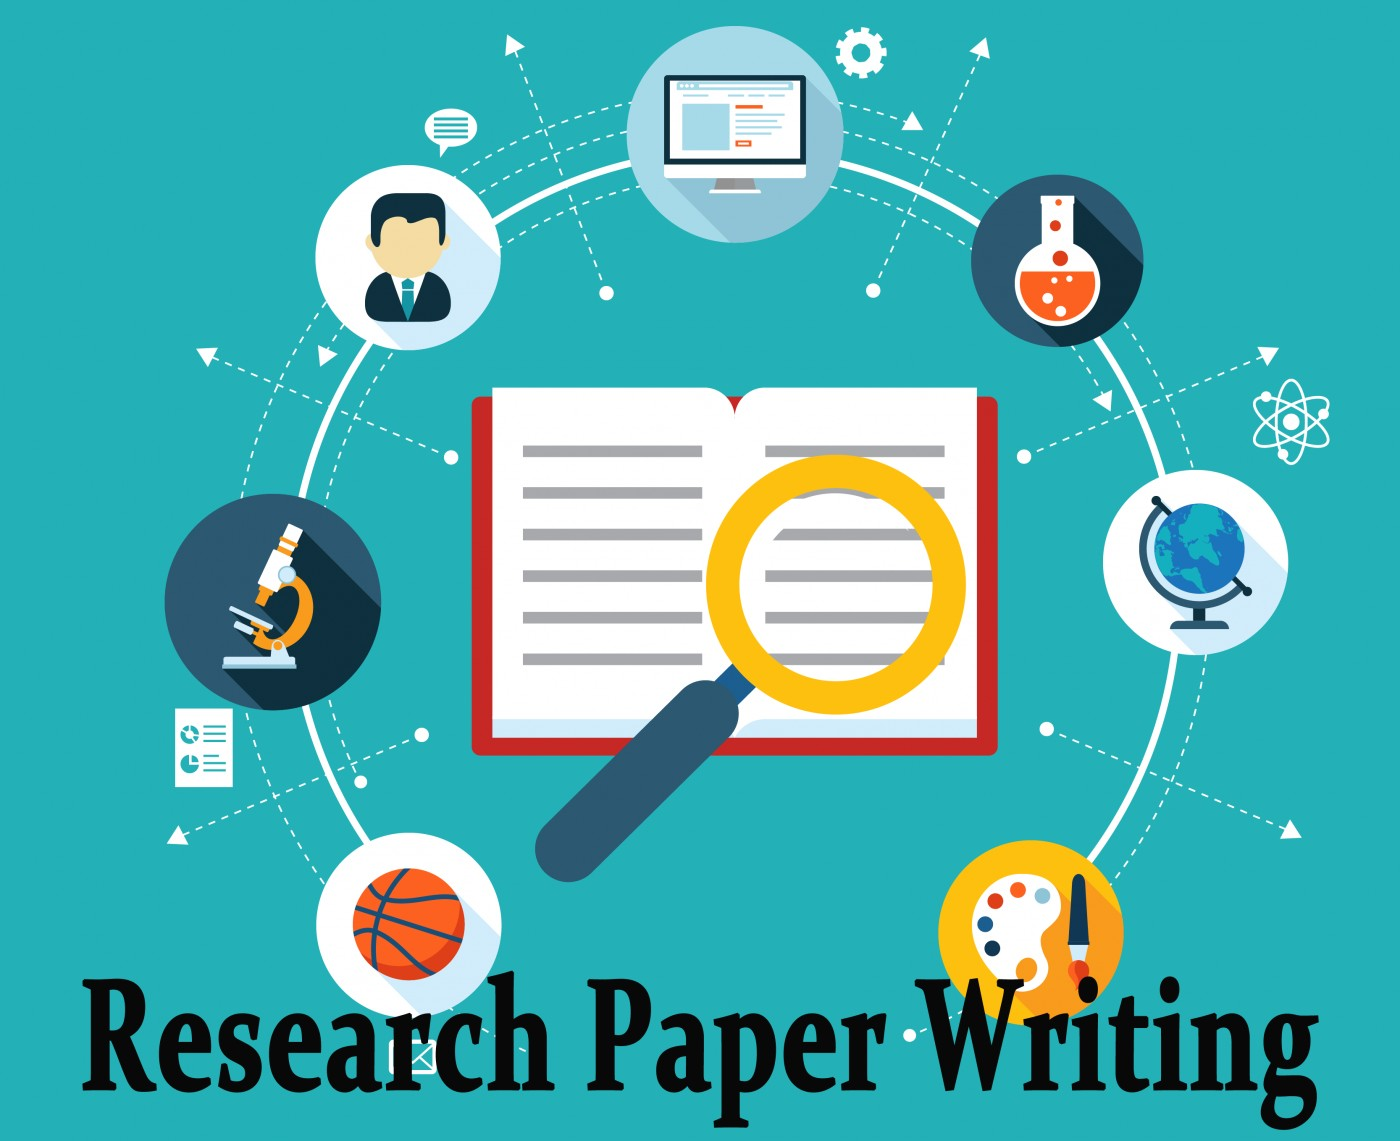 001 503 Effective Research Paper Writing Help With Fantastic Papers Assistance A 1400